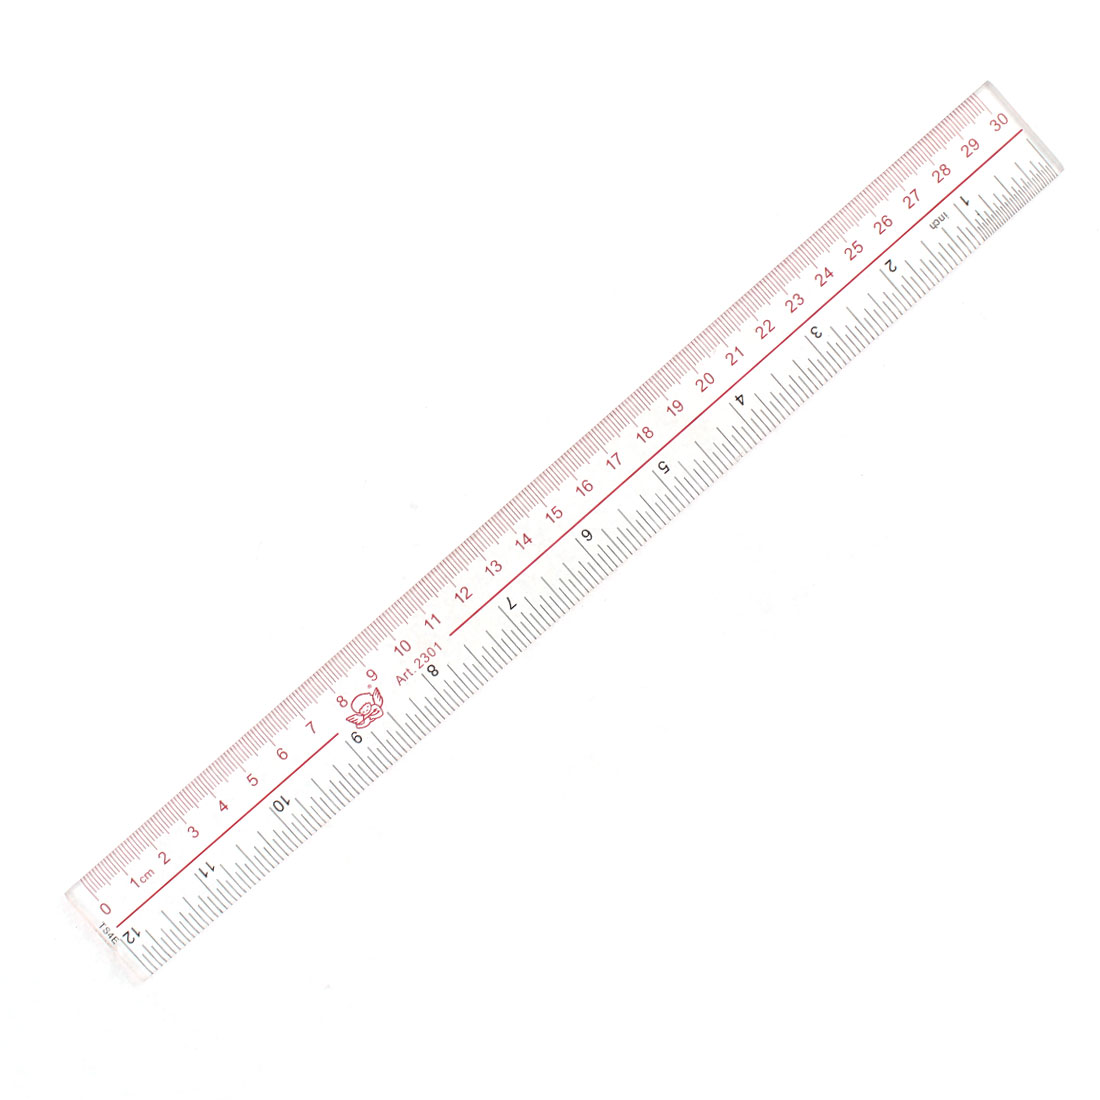 Students Studying Drawing Straight Ruler Measuring Tool 30cm Range Clear